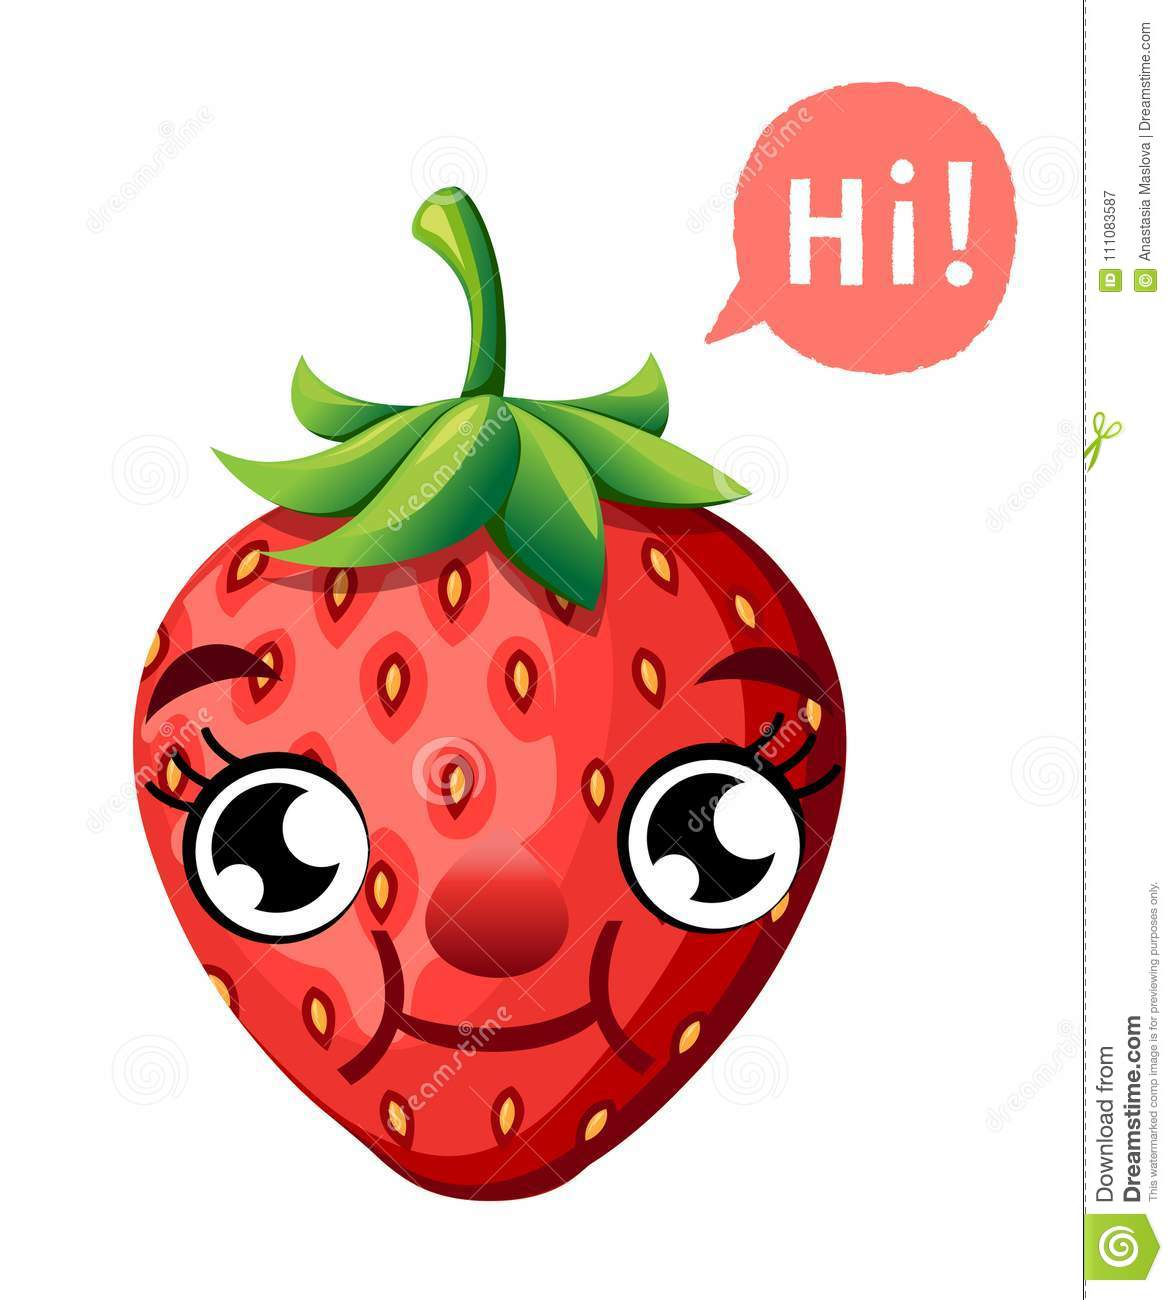 Cute cartoon strawberry smiling fruit with a caption cloud vector illustration isolated on white background web site page and mobi